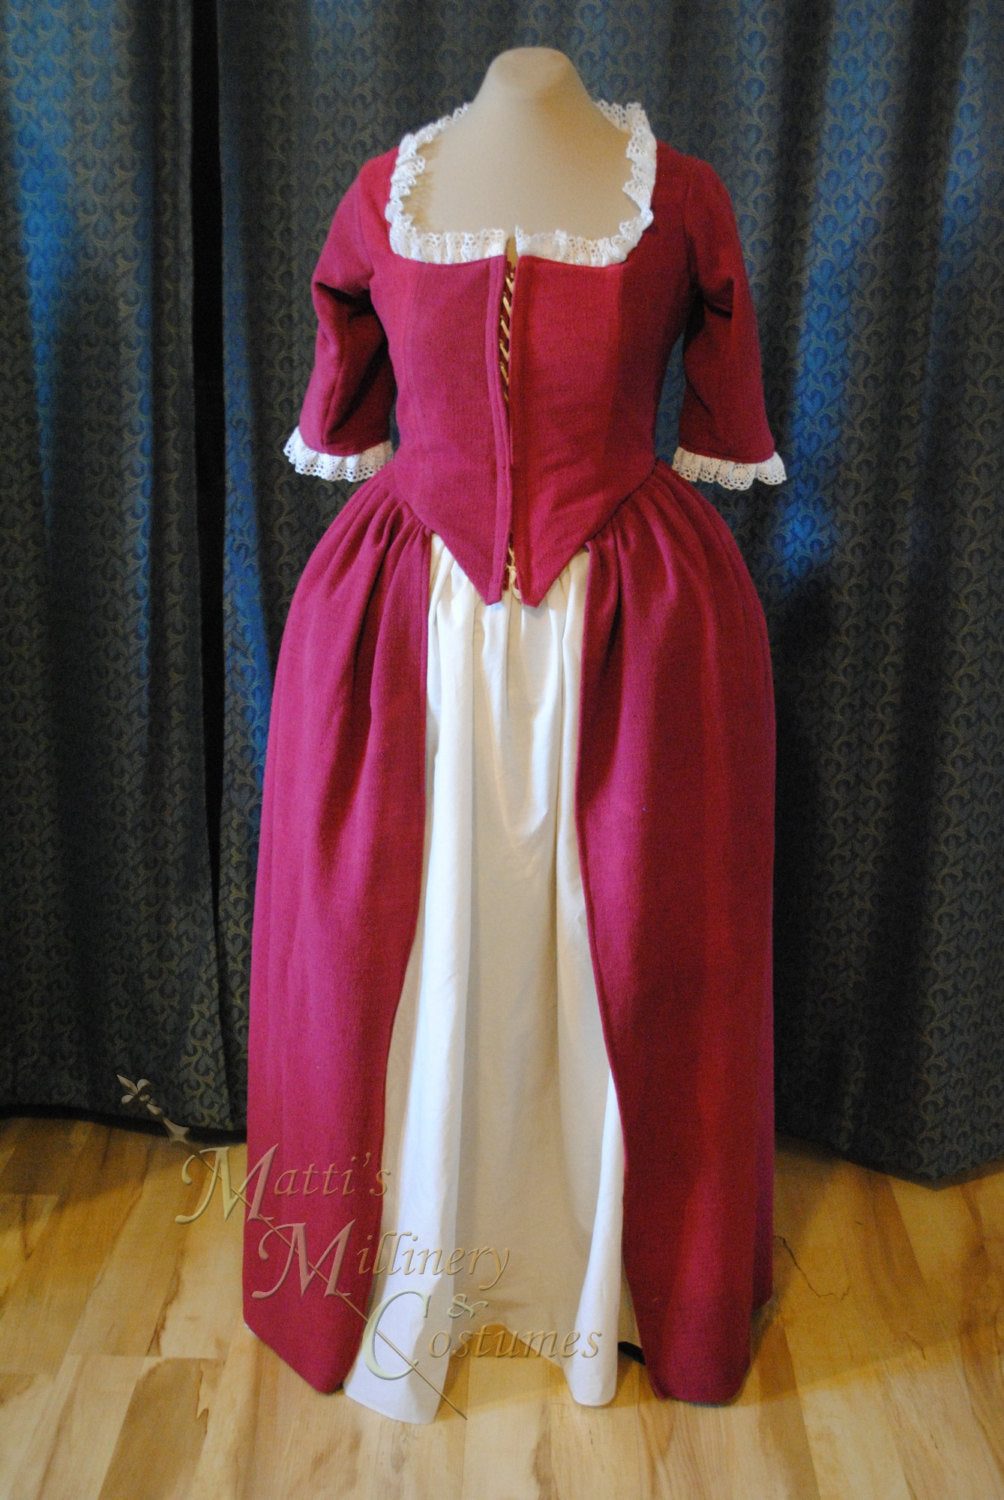 CUSTOM Colonial 18th Century Rococo Dress Gown 1700s House outfit Lace-up front